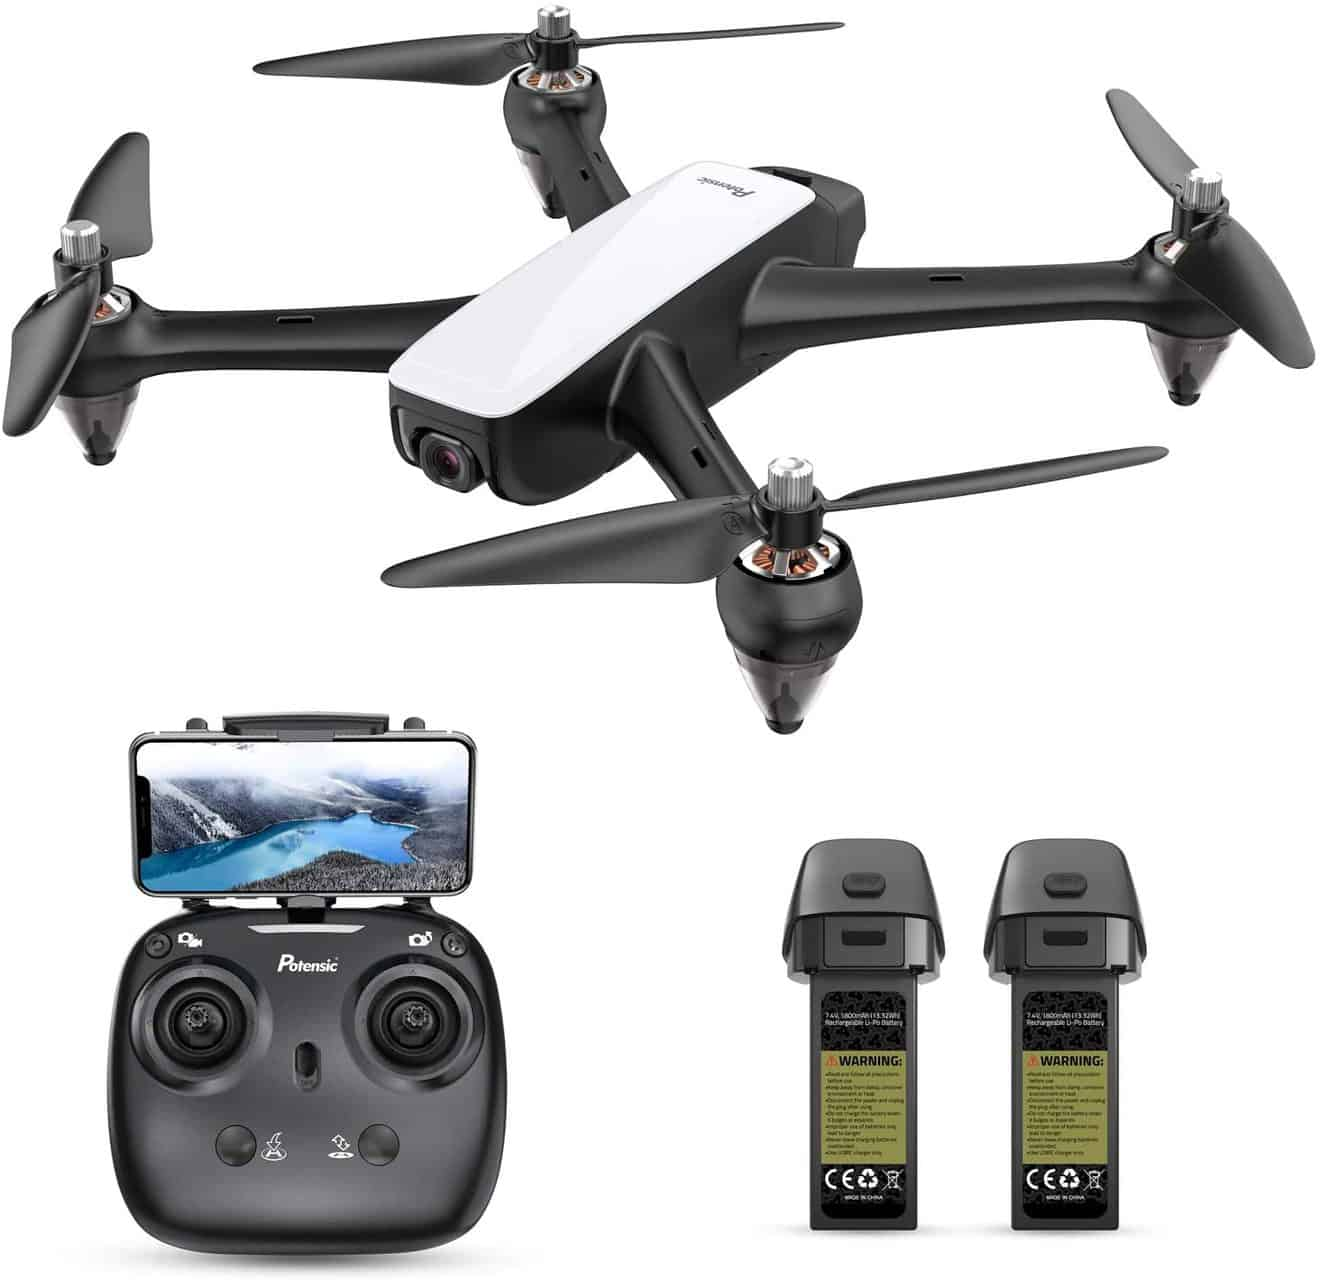 D60 GPS Drone Quadcopter by Potensic Store